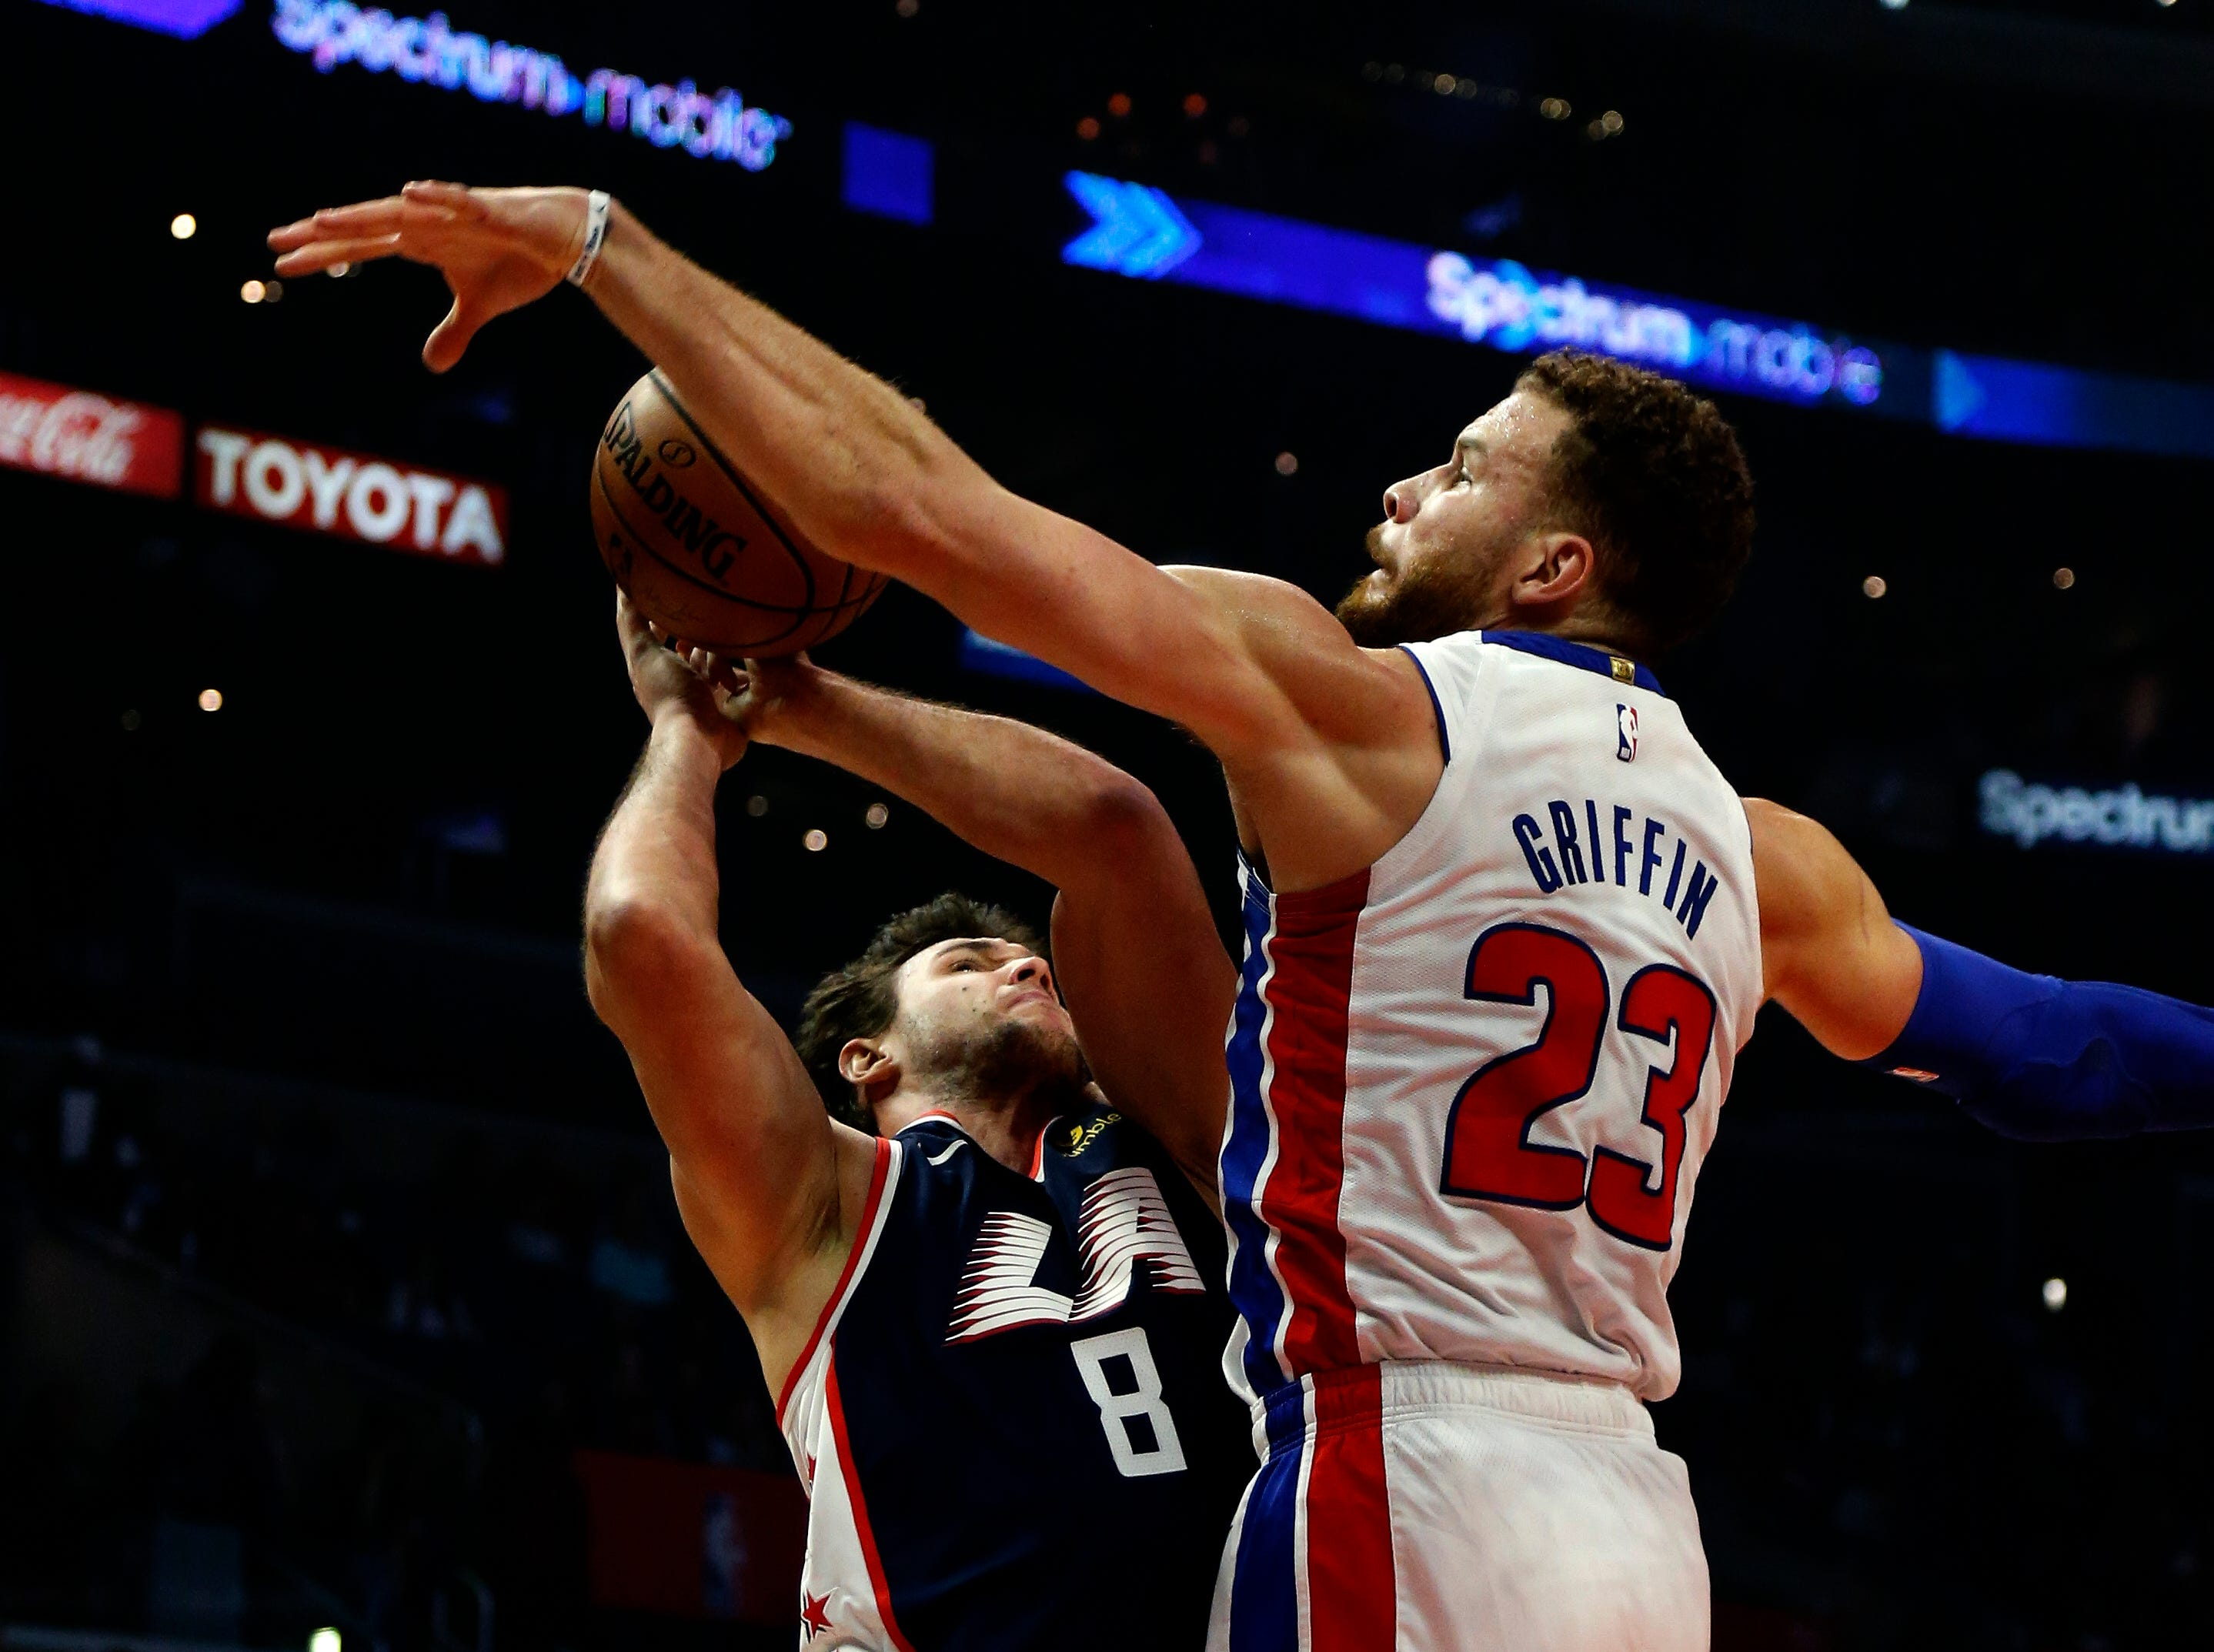 Detroit Pistons' Blake Griffin, right, blocks a shot by Los Angeles Clippers' Danilo Gallinari during the first half.